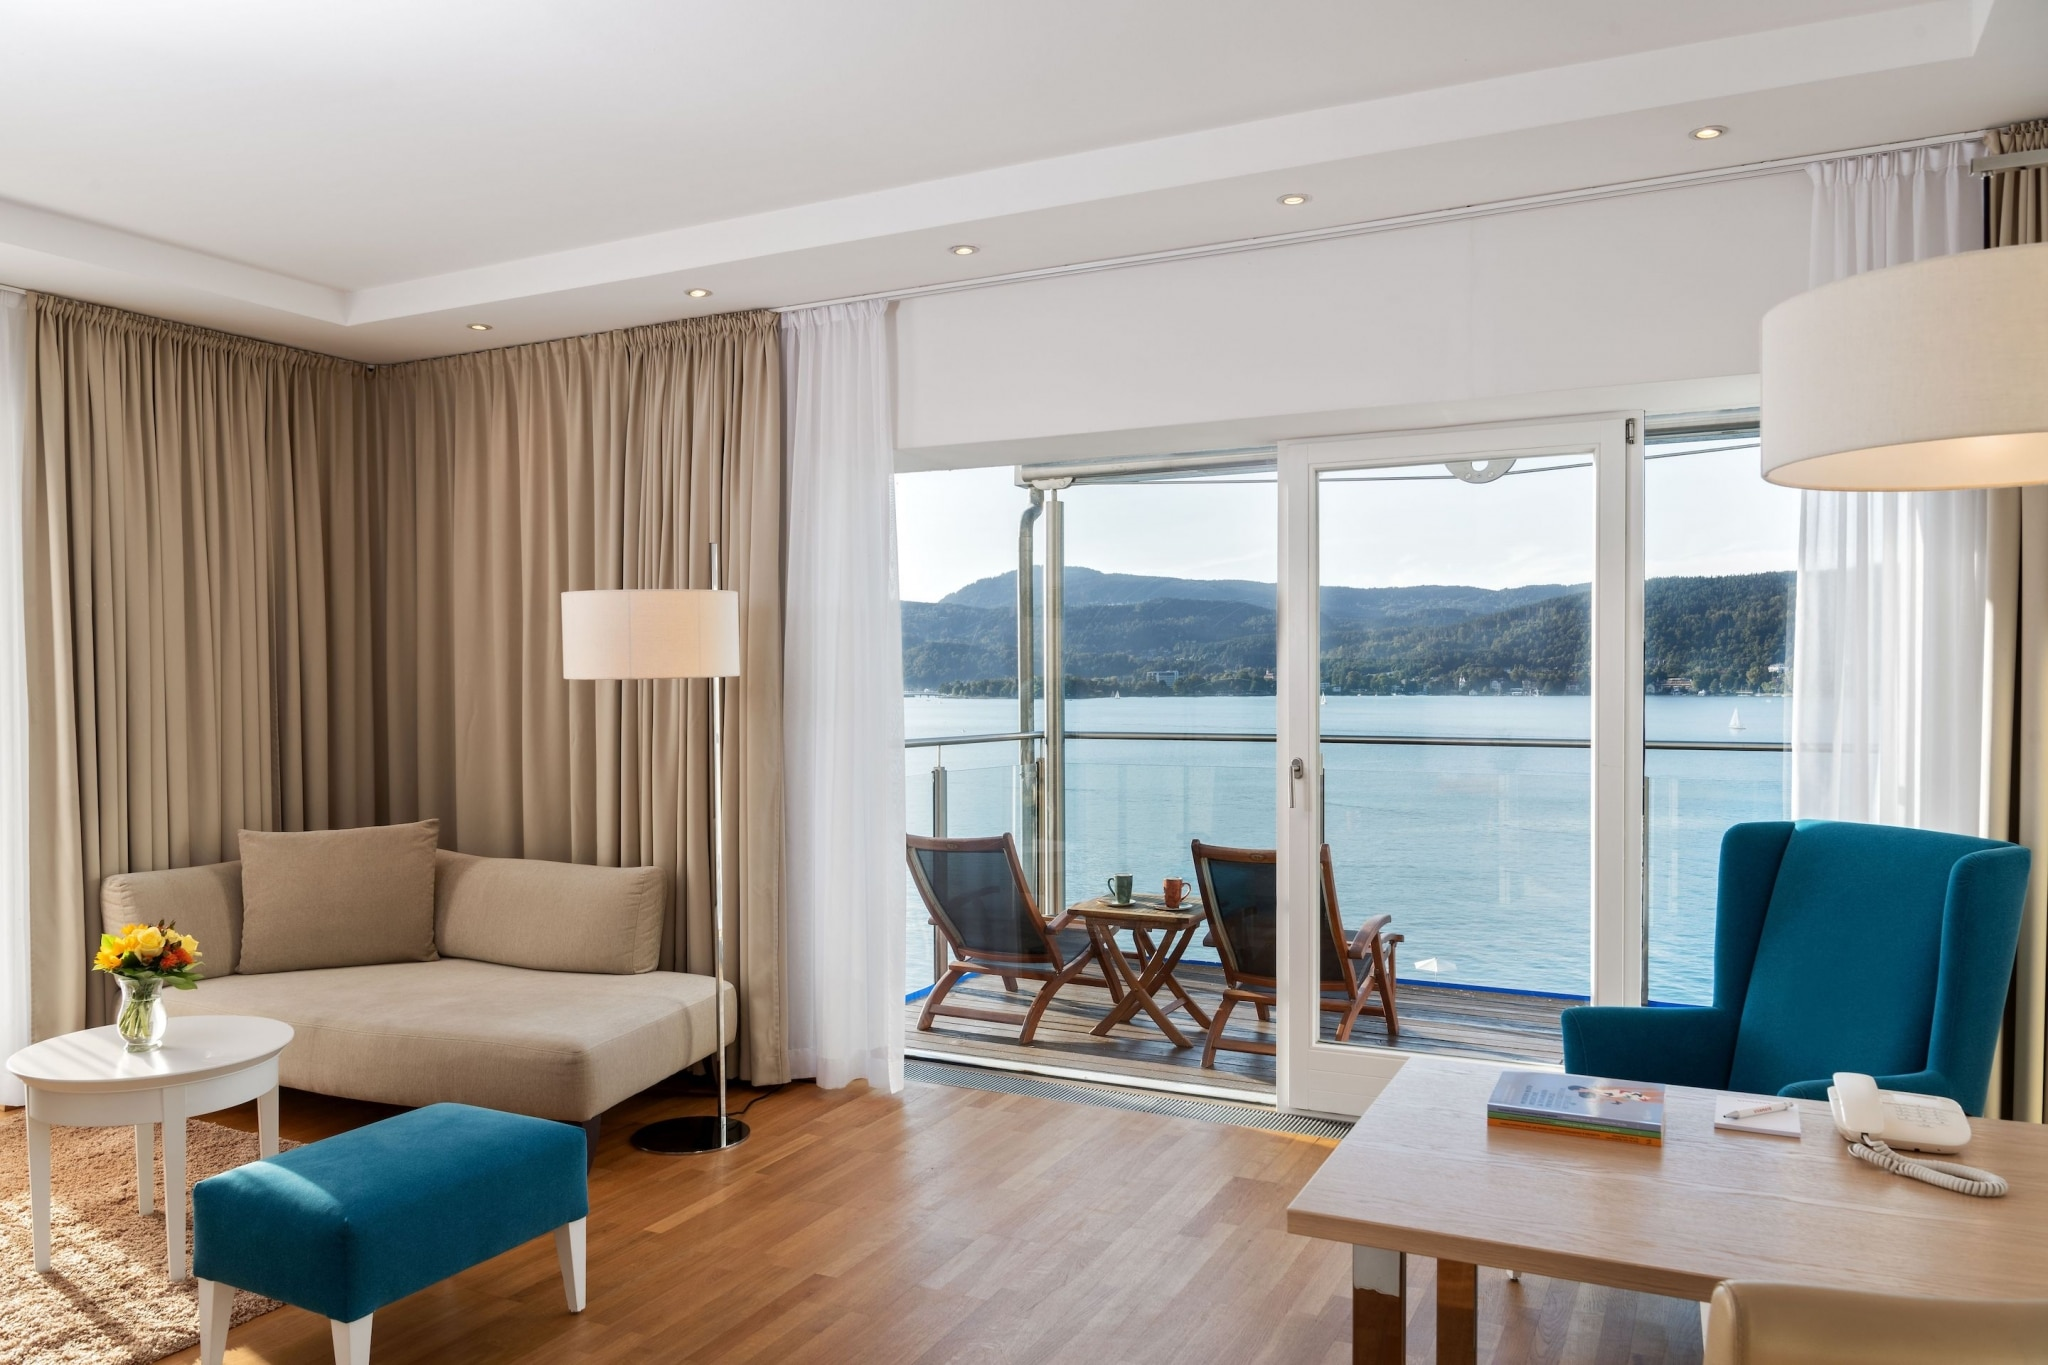 Luxurious suite with balcony and view of Lake Wörthersee